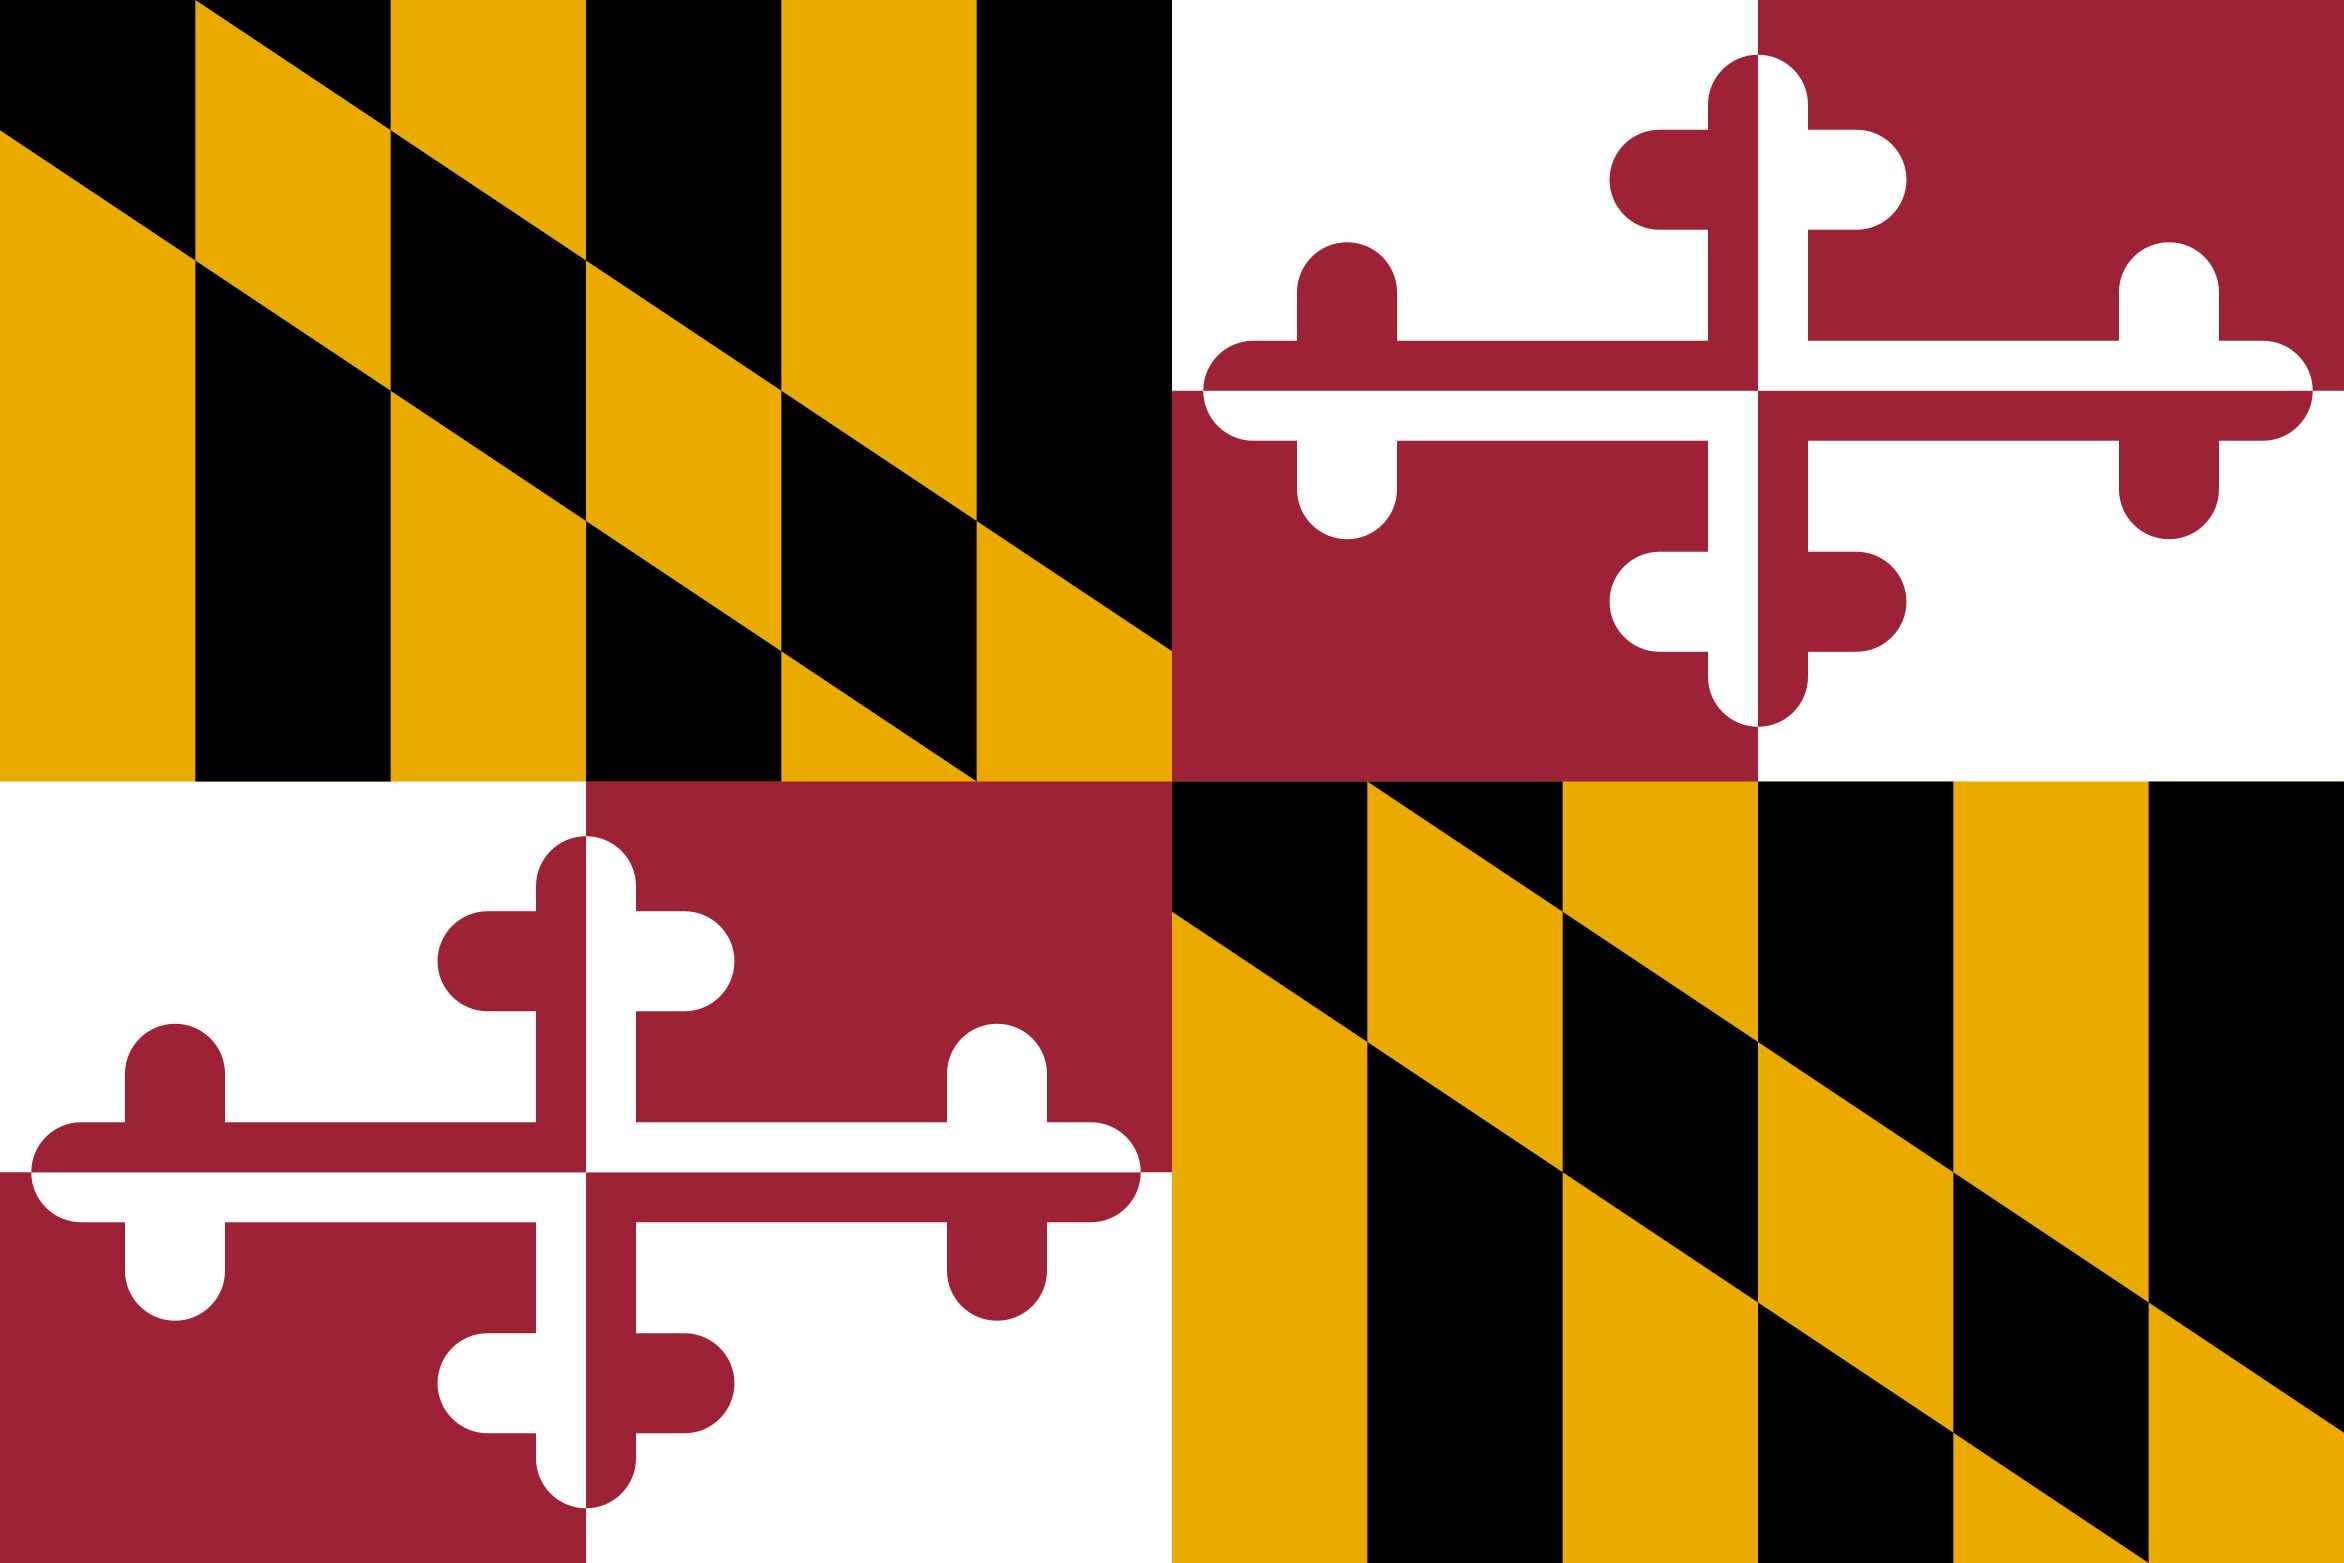 Maryland State Flag Colors